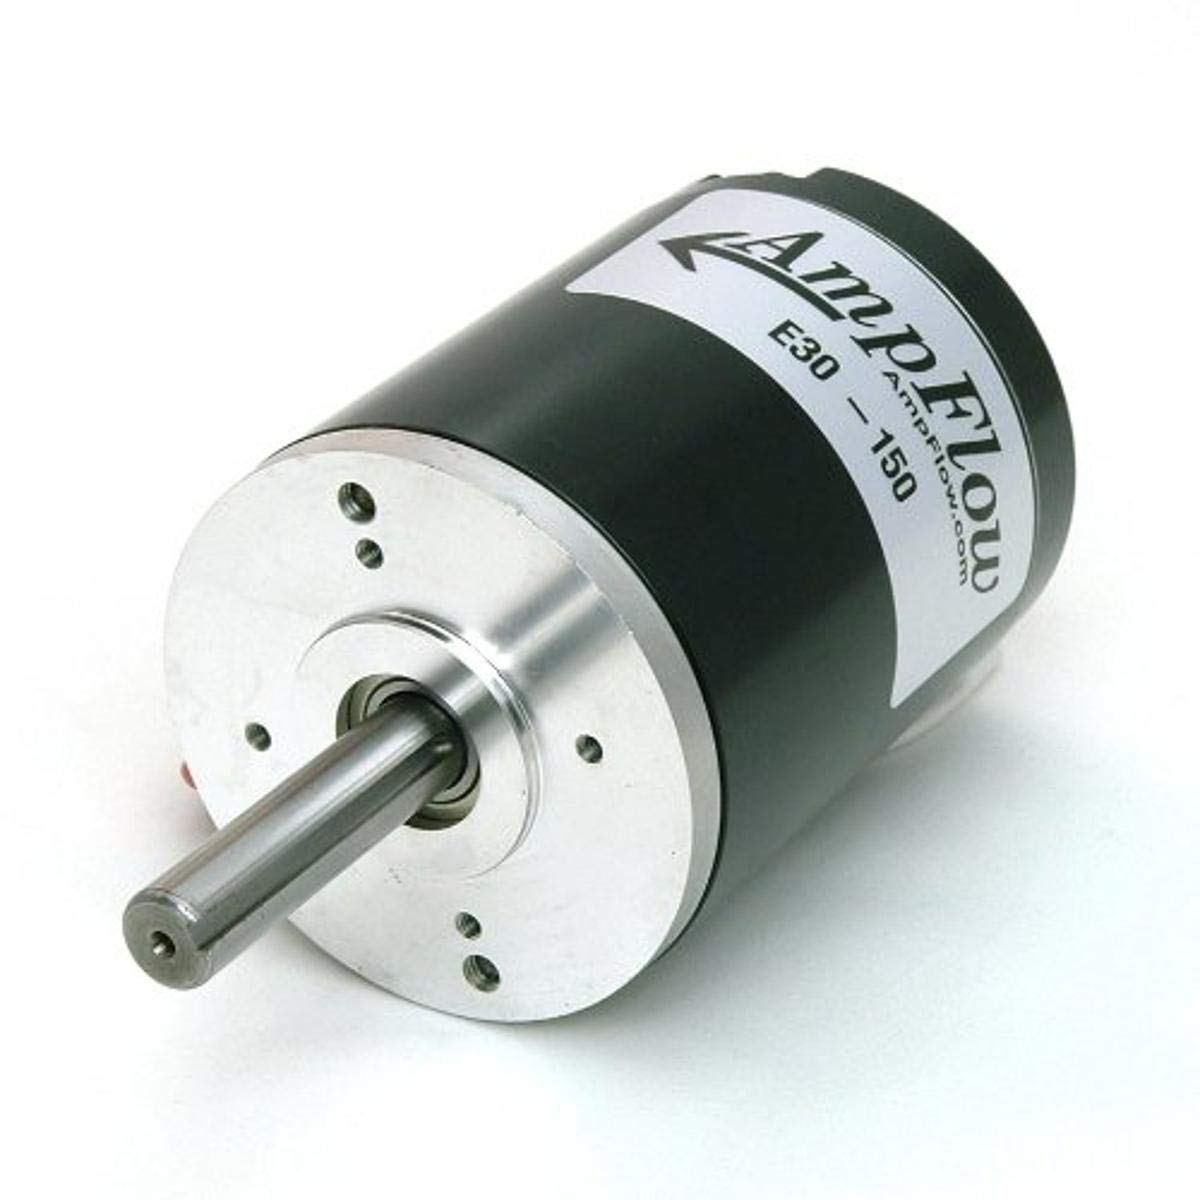 AmpFlow E30-150 Brushed Electric Motor